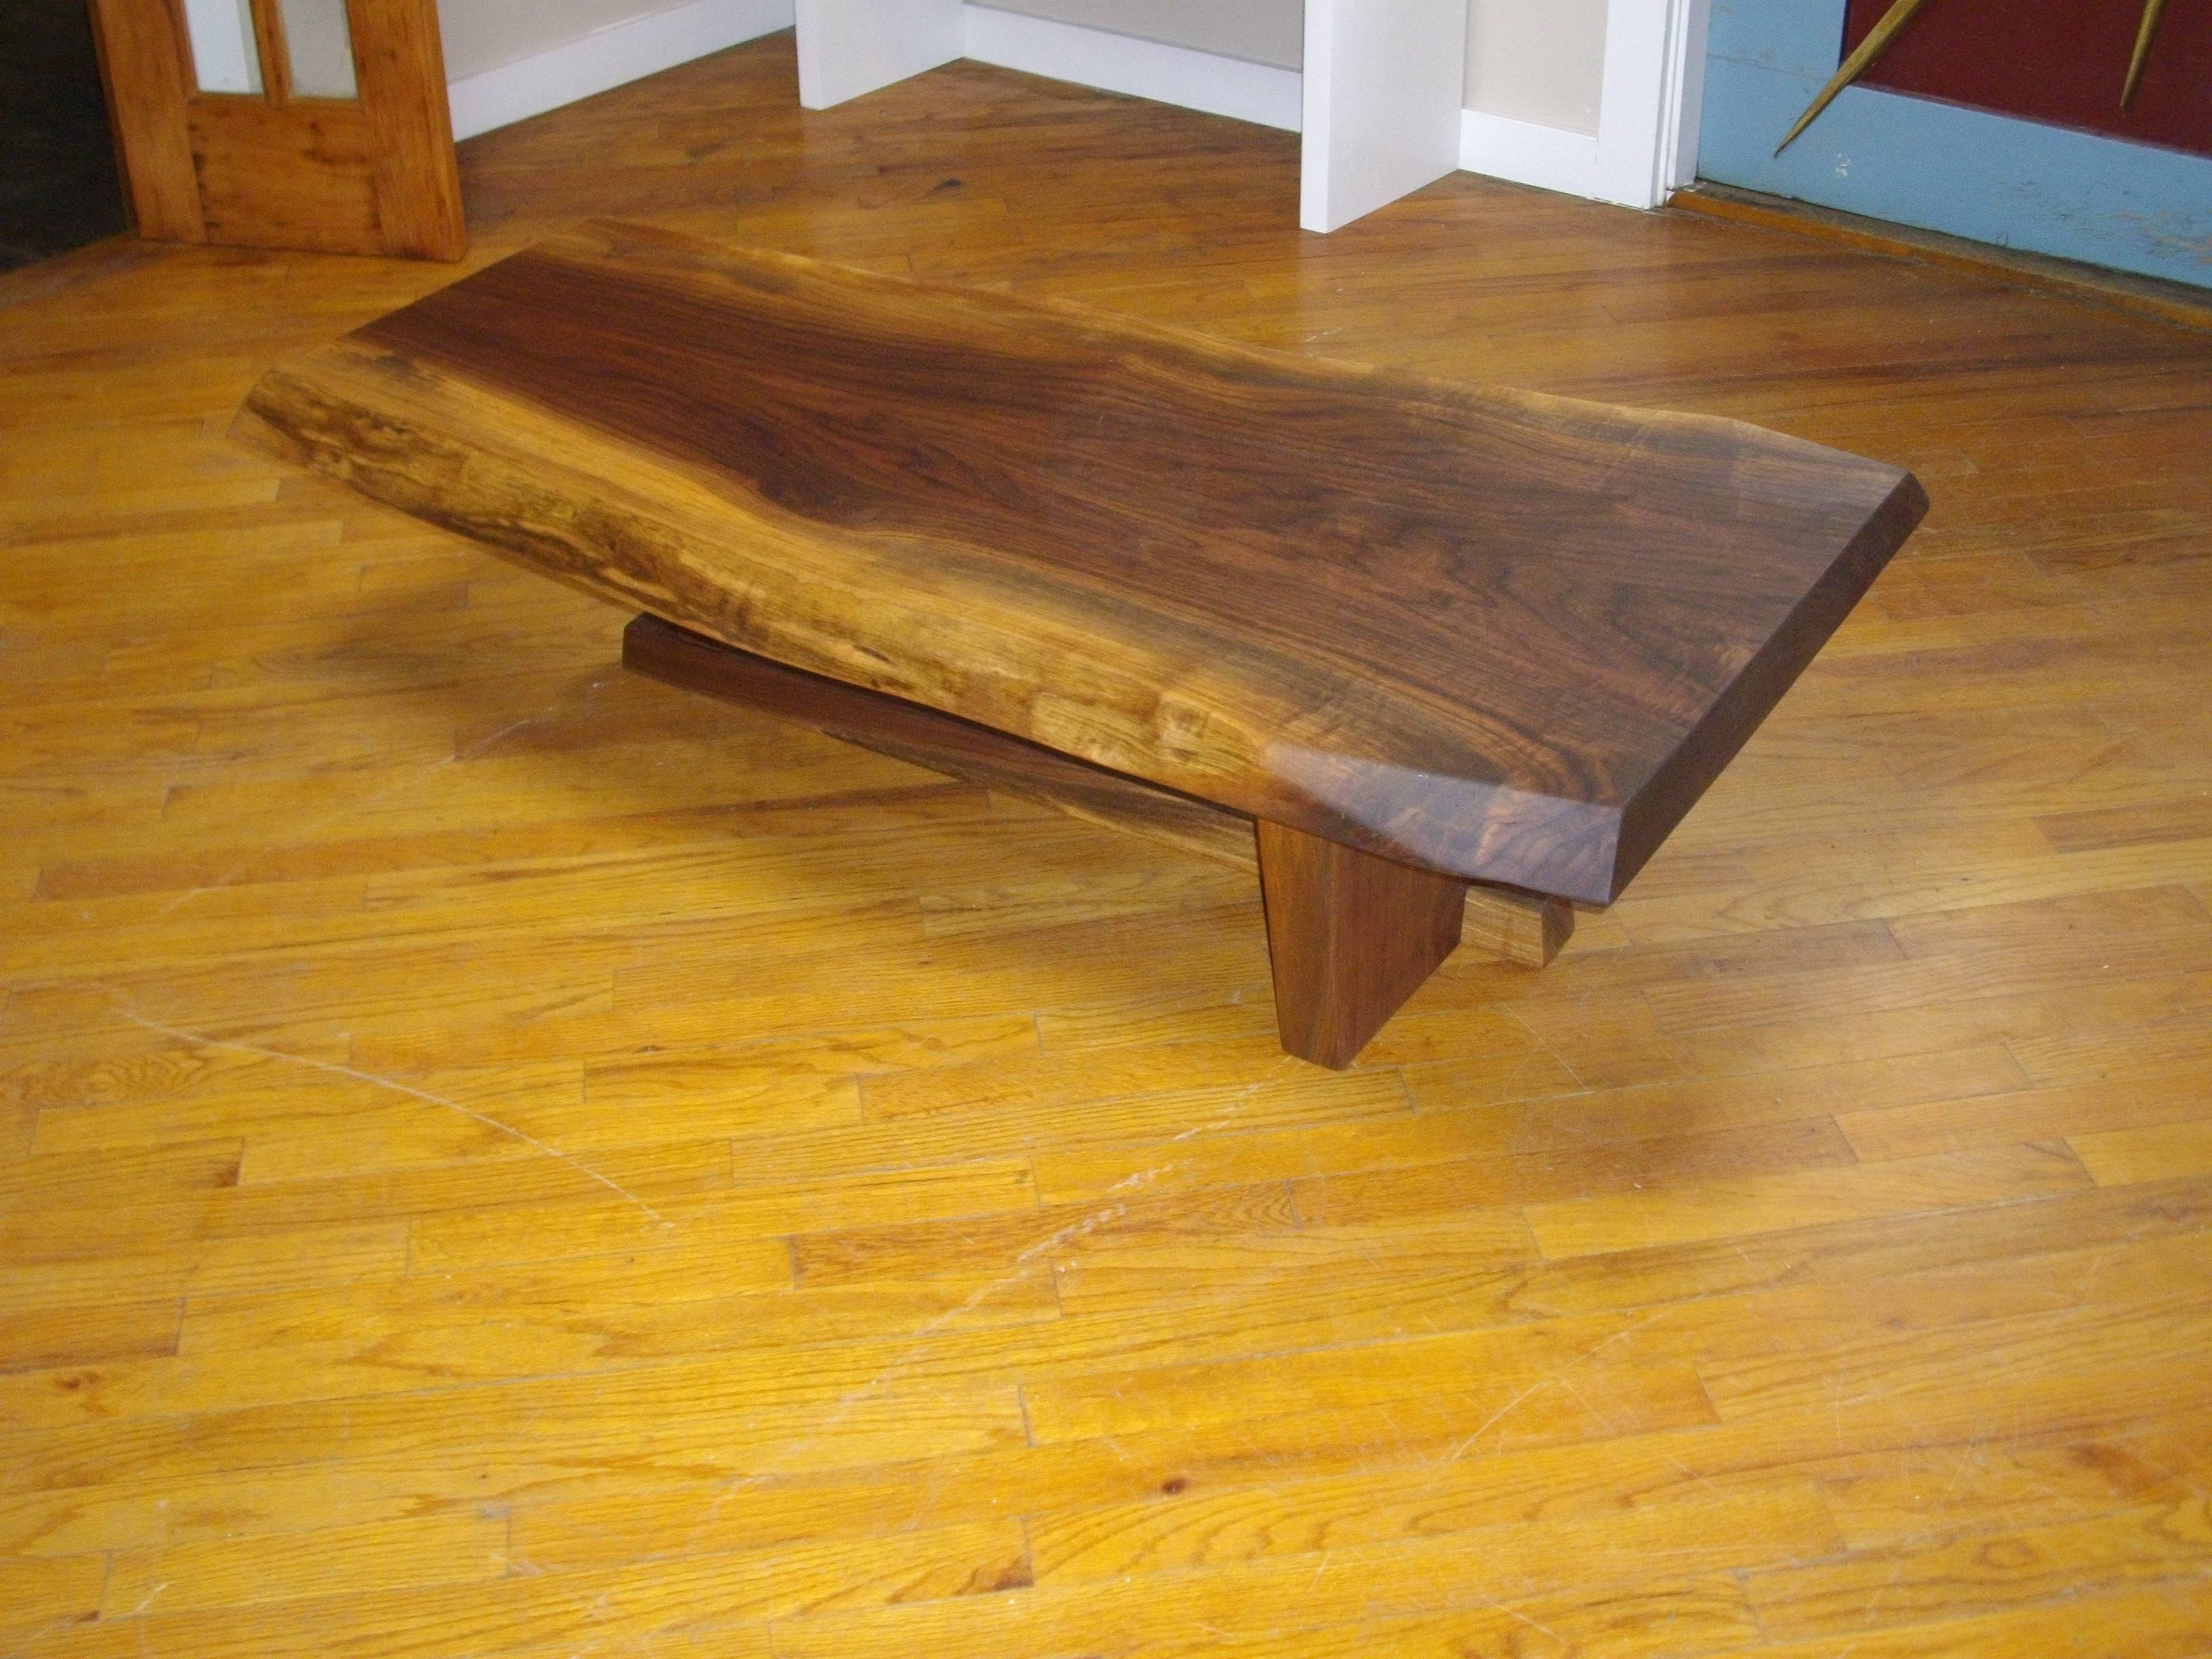 Solid Wood Coffee Table Canada – Home Interior Design Ideas | Home With Coffee Tables Solid Wood (View 10 of 30)